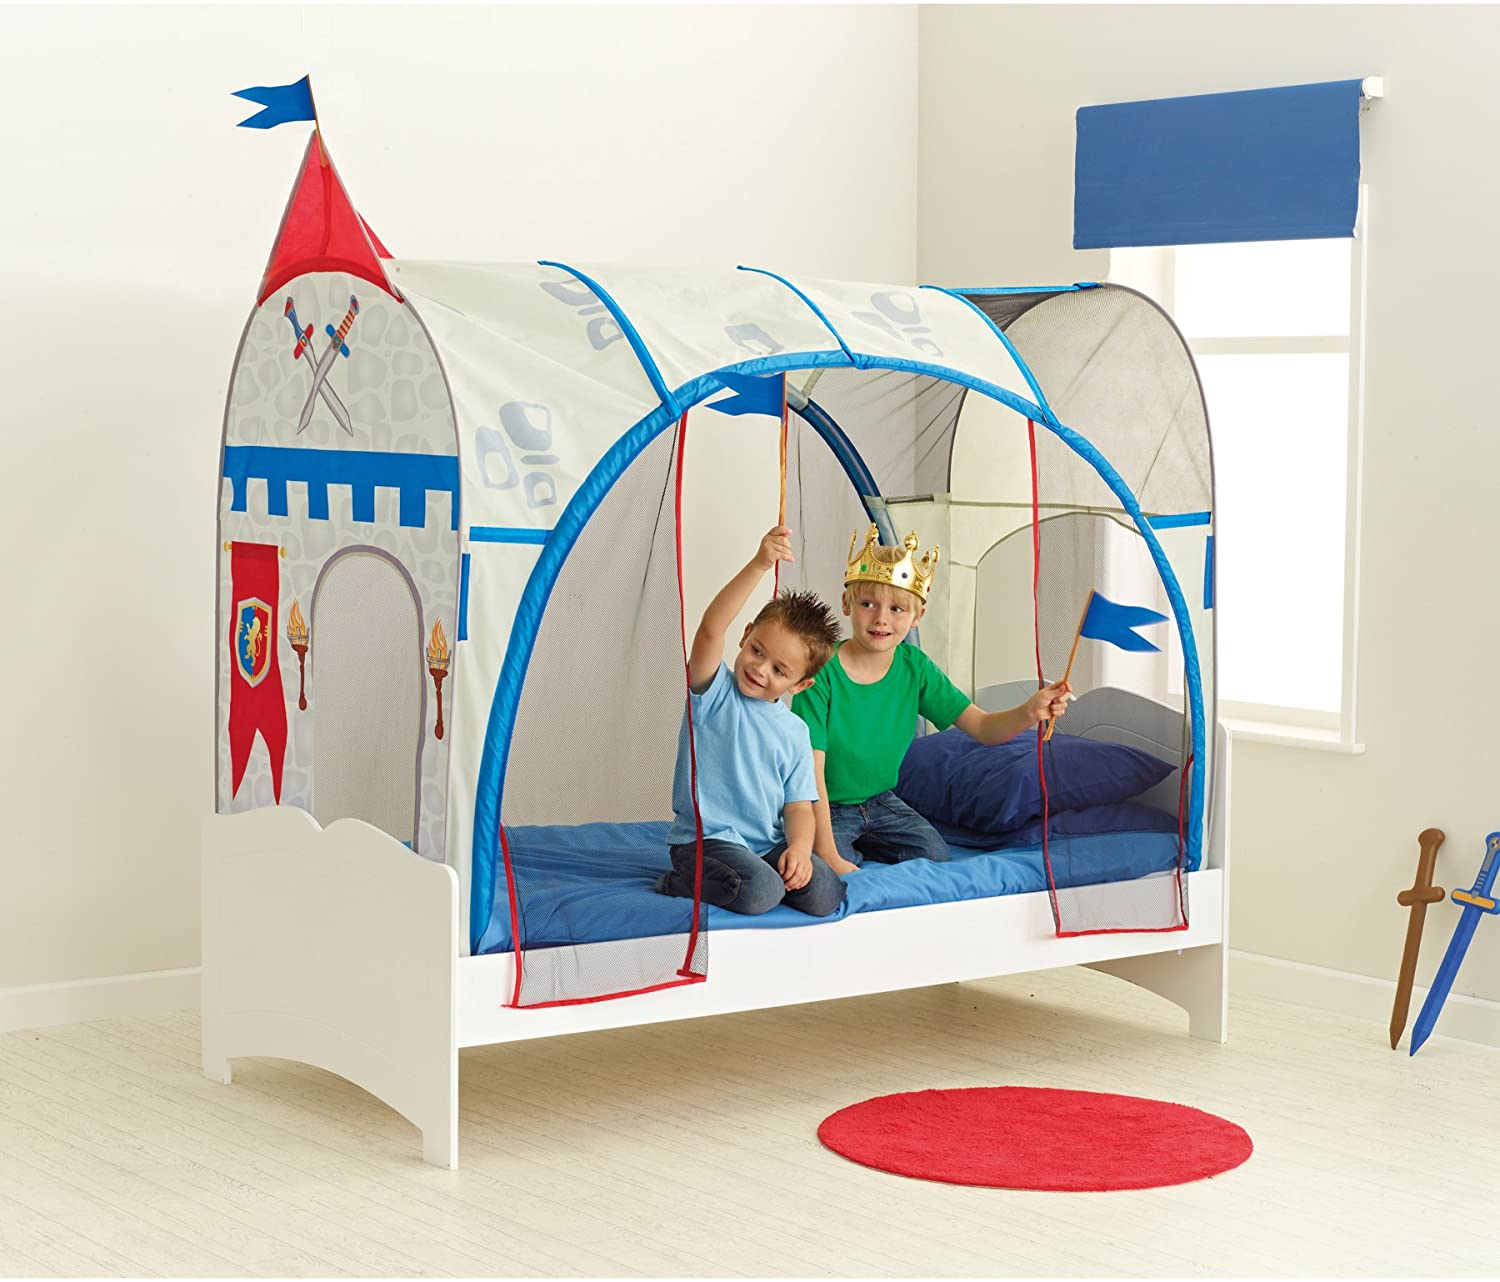 Worlds Apart Knights Single Bed Feature Tent Amazon.co.uk Kitchen u0026 Home & Worlds Apart Knights Single Bed Feature Tent: Amazon.co.uk ...